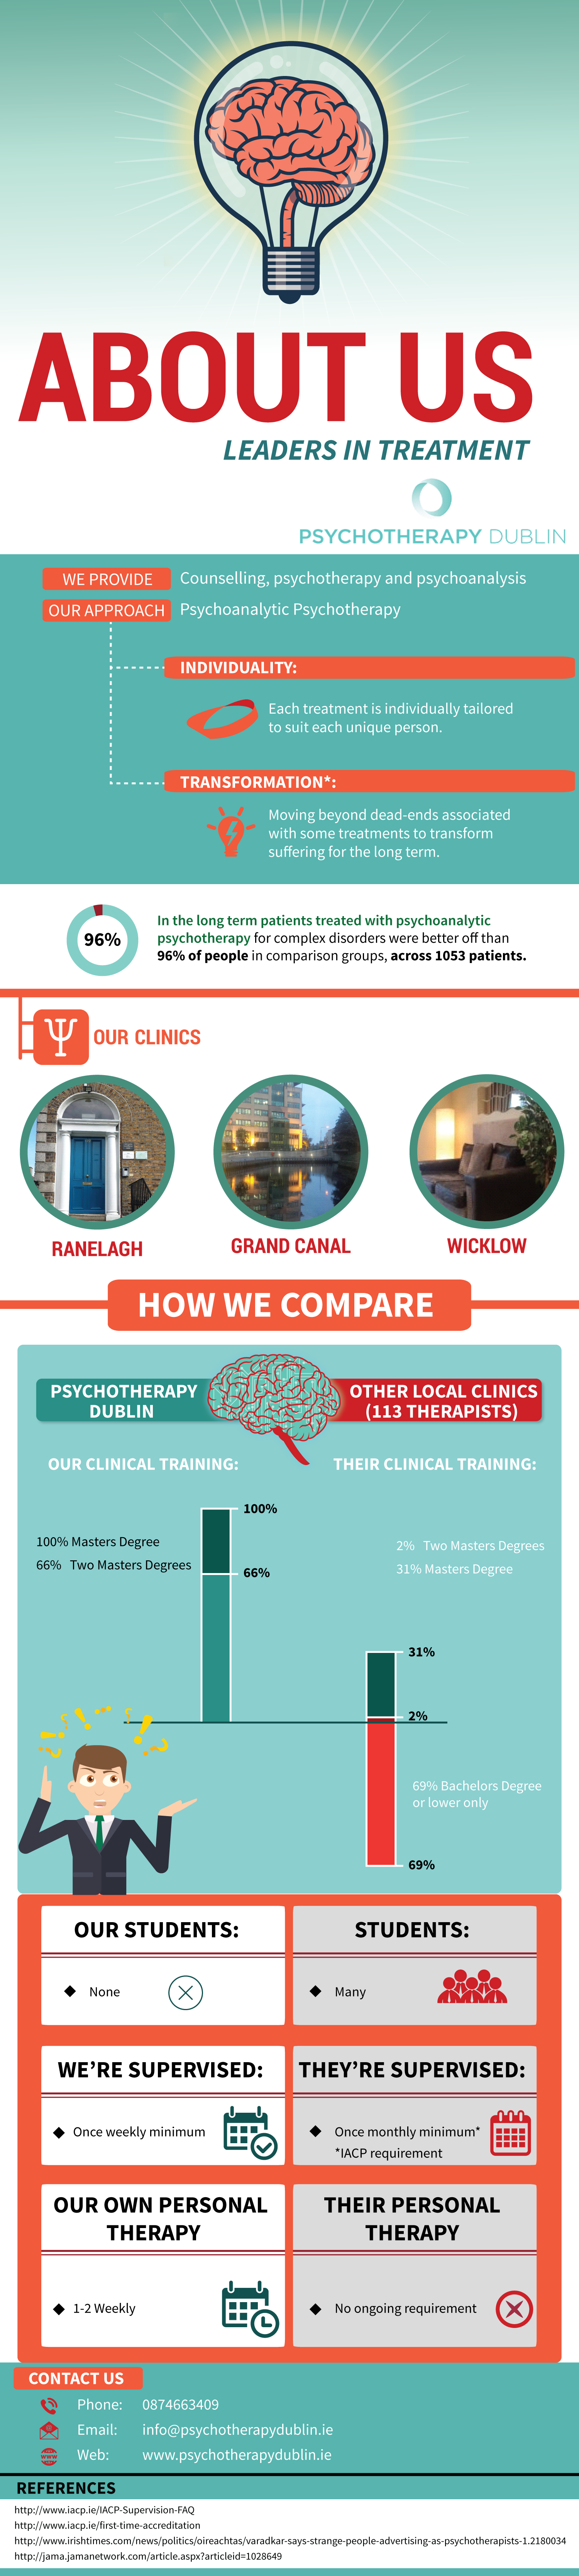 Psychotherapy Dublin About Us Infographic